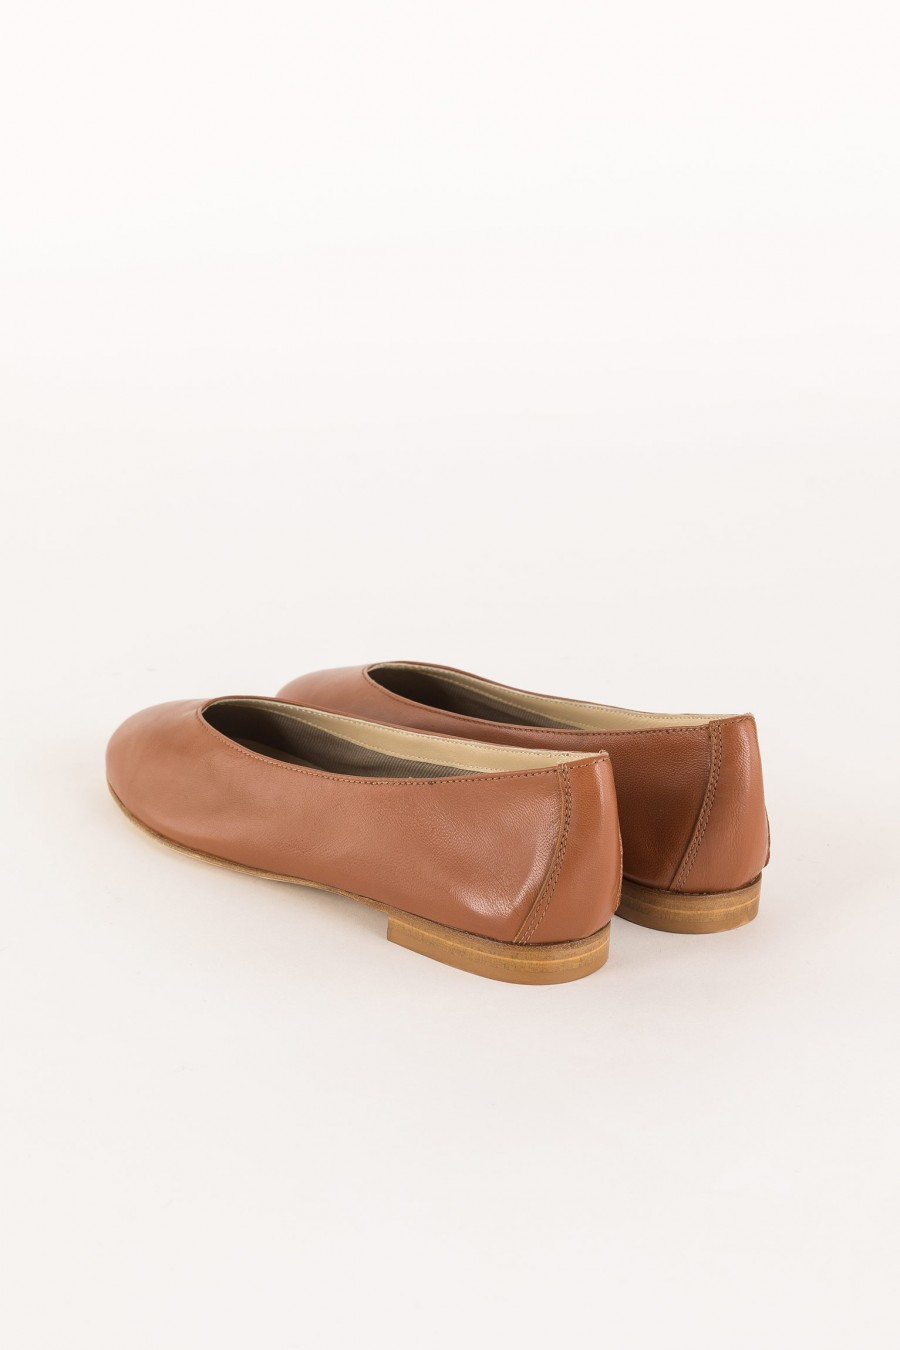 brown leather ballerina